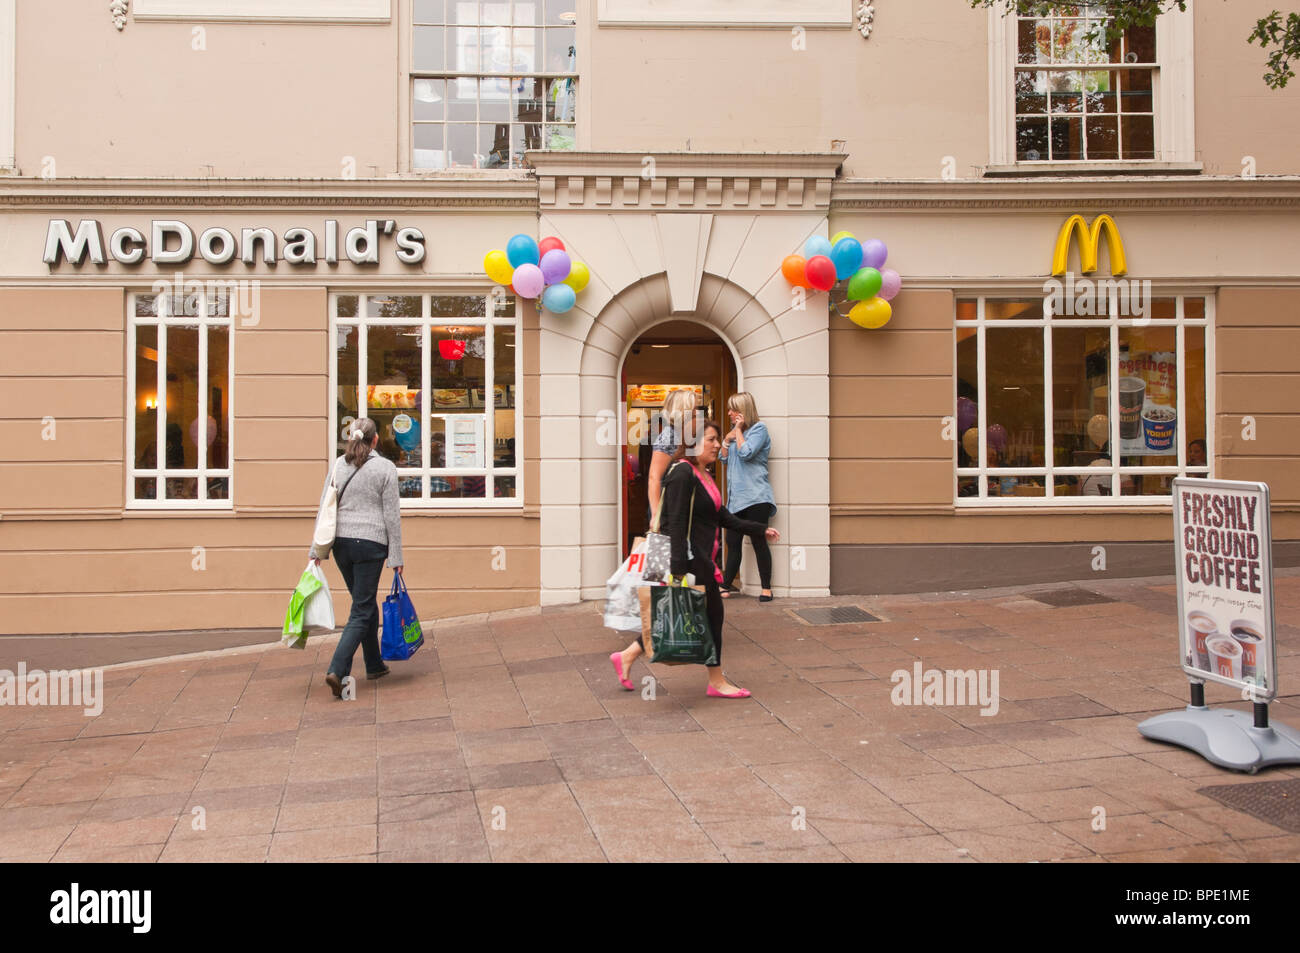 mcdonald s great britain the turnaround N) turnaround remained on track in the latest quarter despite intense competition  in  on same-store sales growth in britain, australia, canada and germany   analyst estimate of $148, according to thomson reuters i/b/e/s.